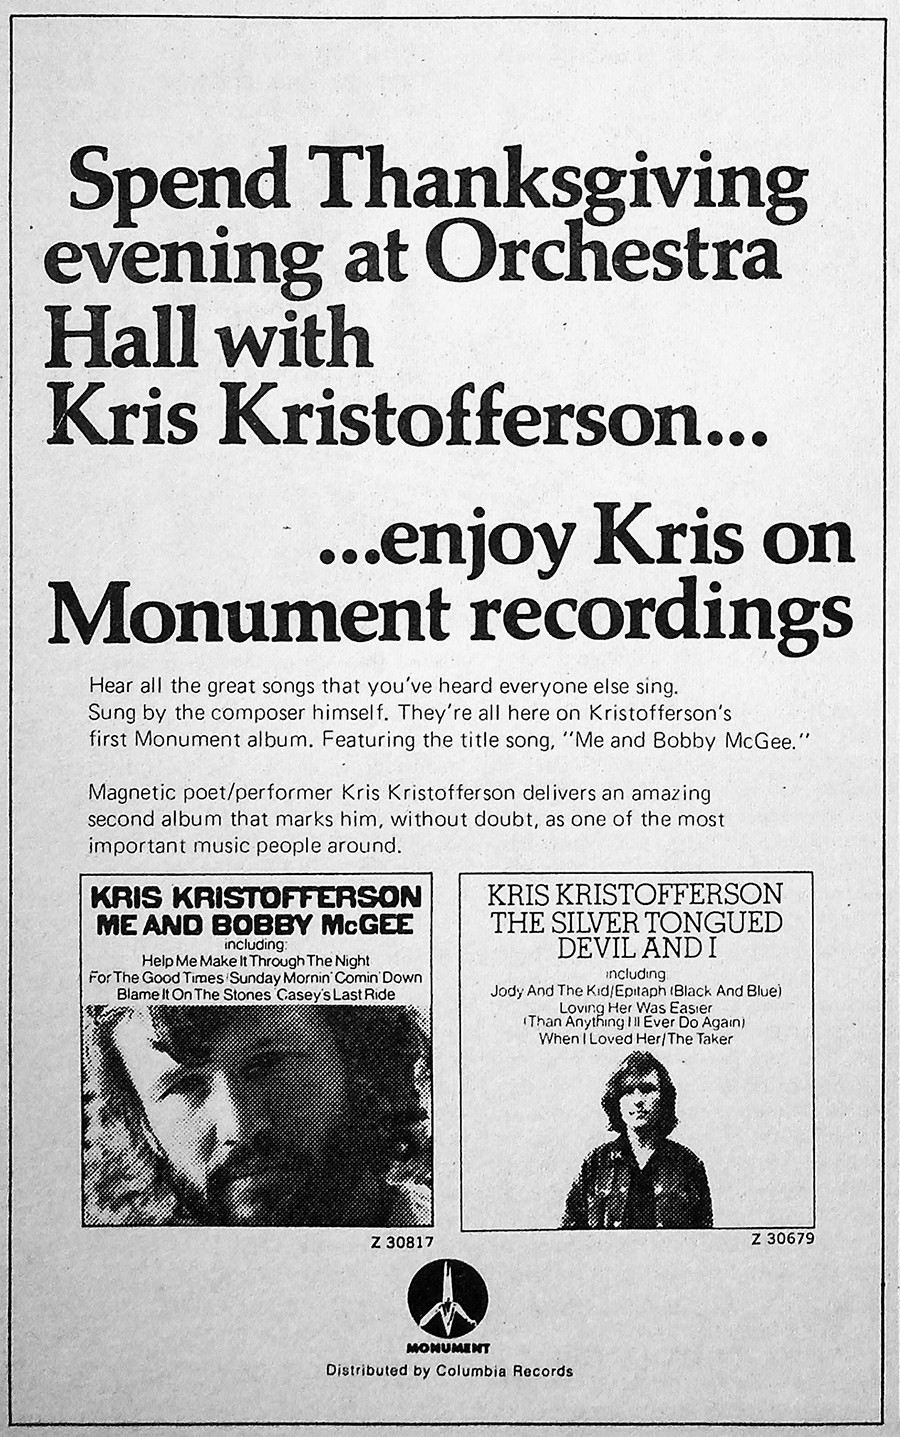 Kris Kristofferson ad from October 22, 1971